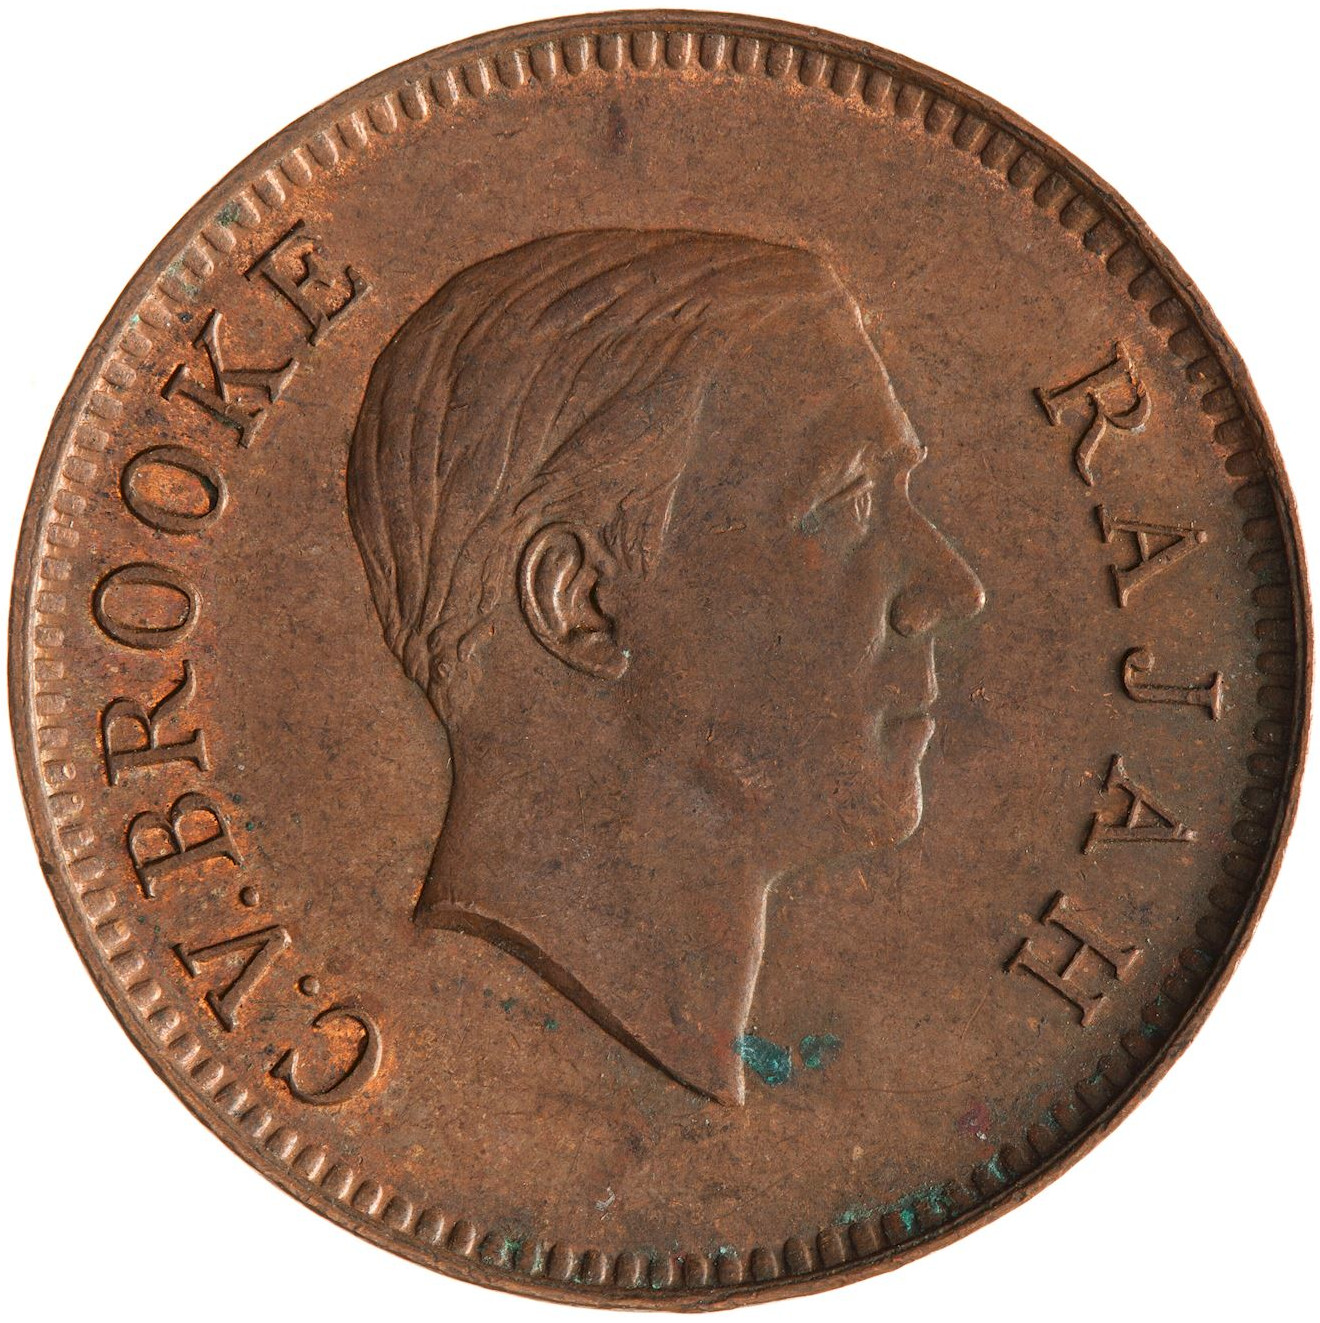 One Cent 1937: Photo Coin - 1 Cent, Sarawak, 1937